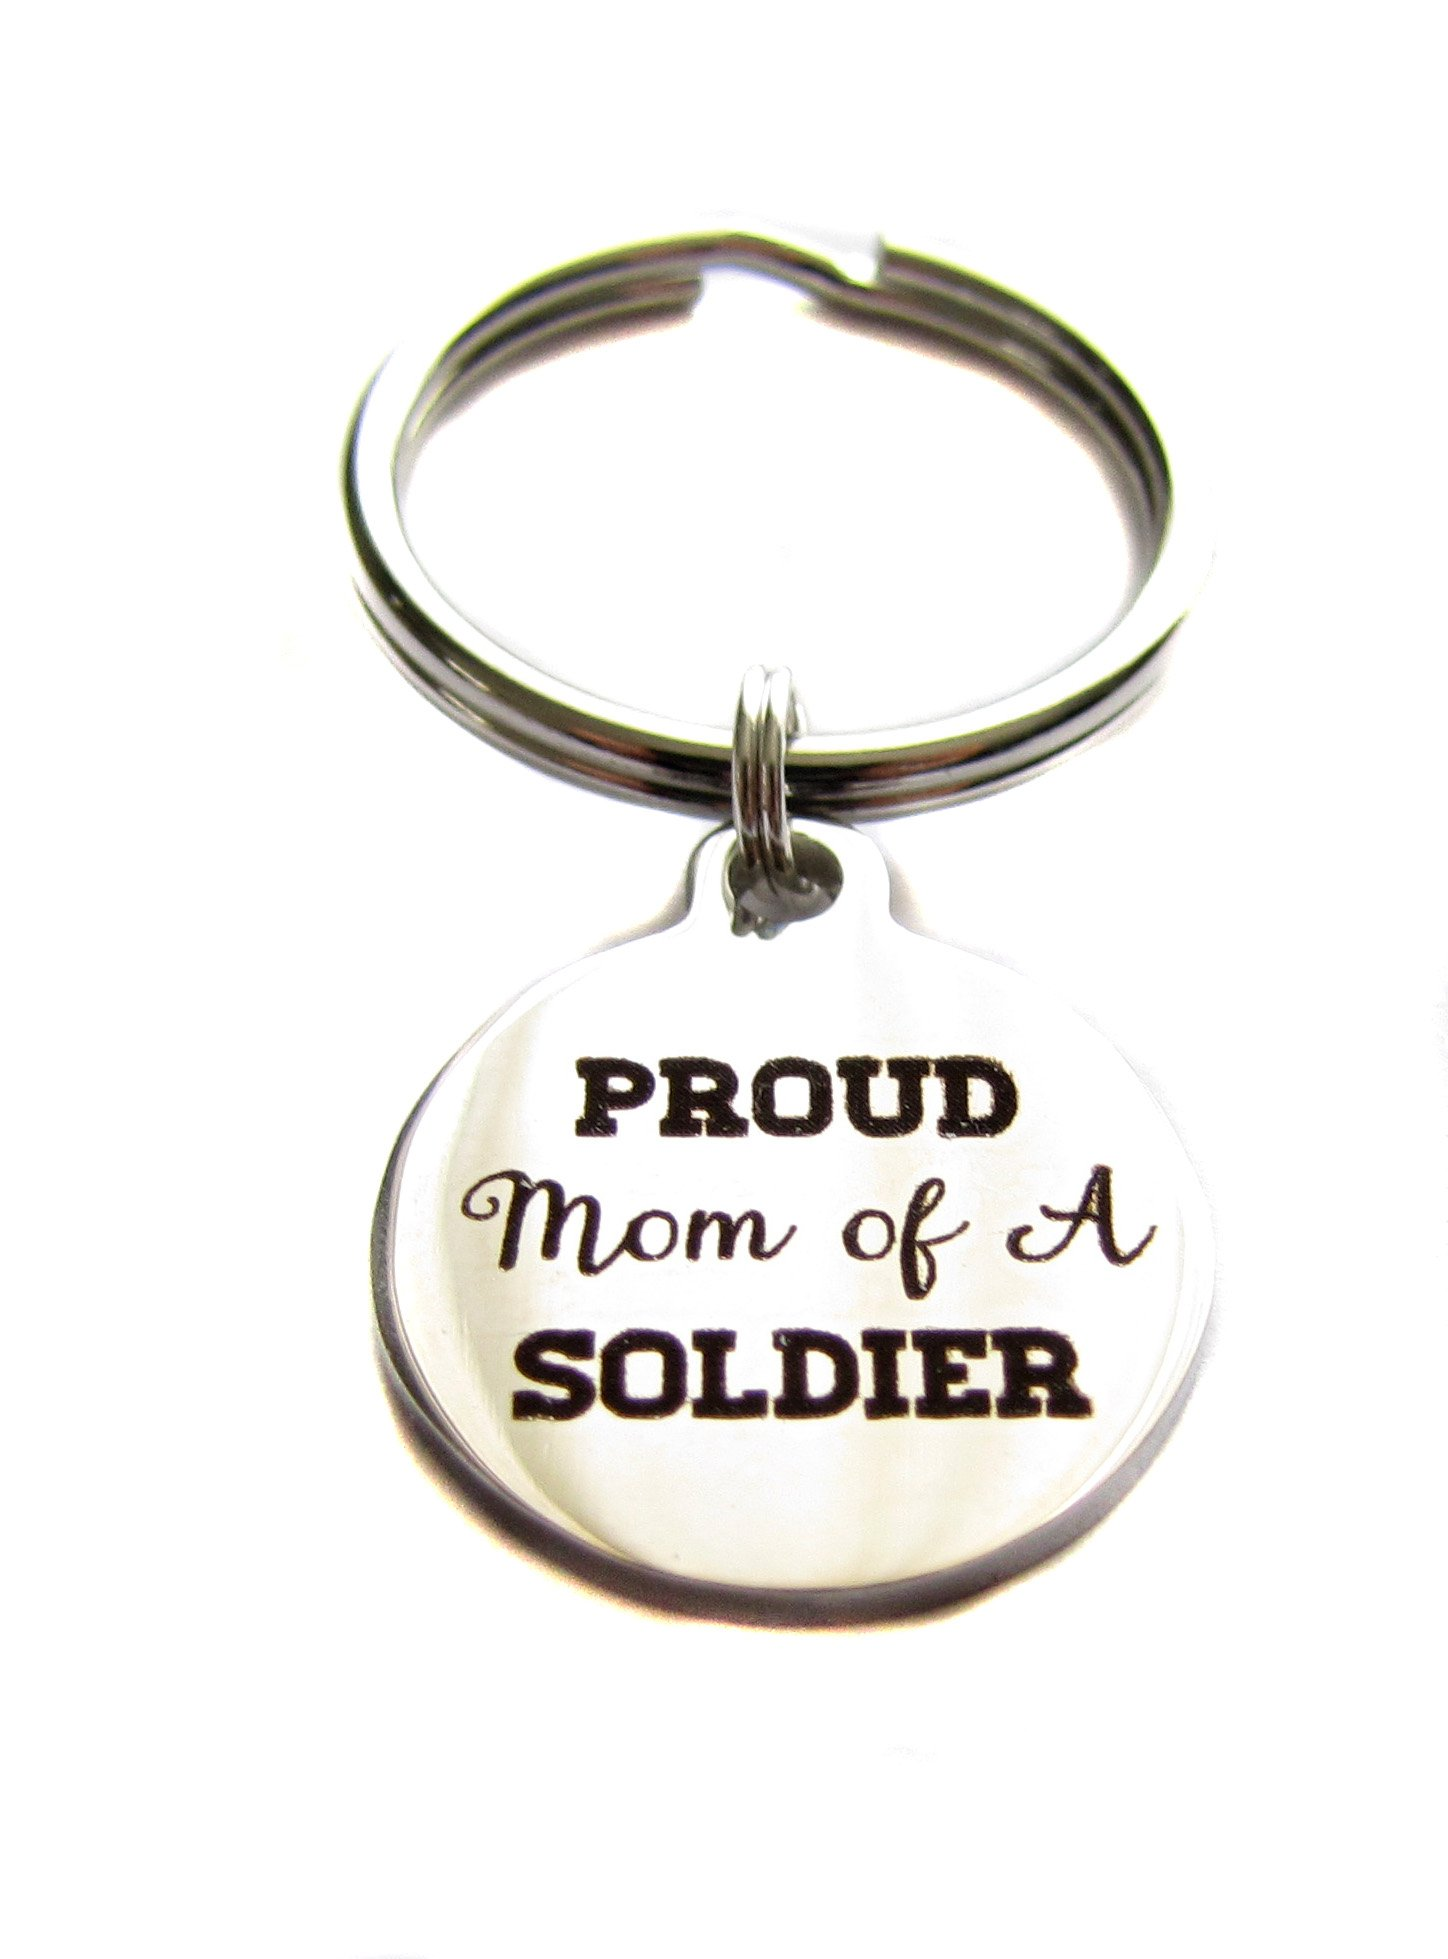 Heart Projects Stainless Steel Proud Mom Of A Soldier Charm Keychain, Bag Charm, Military Mom Gift